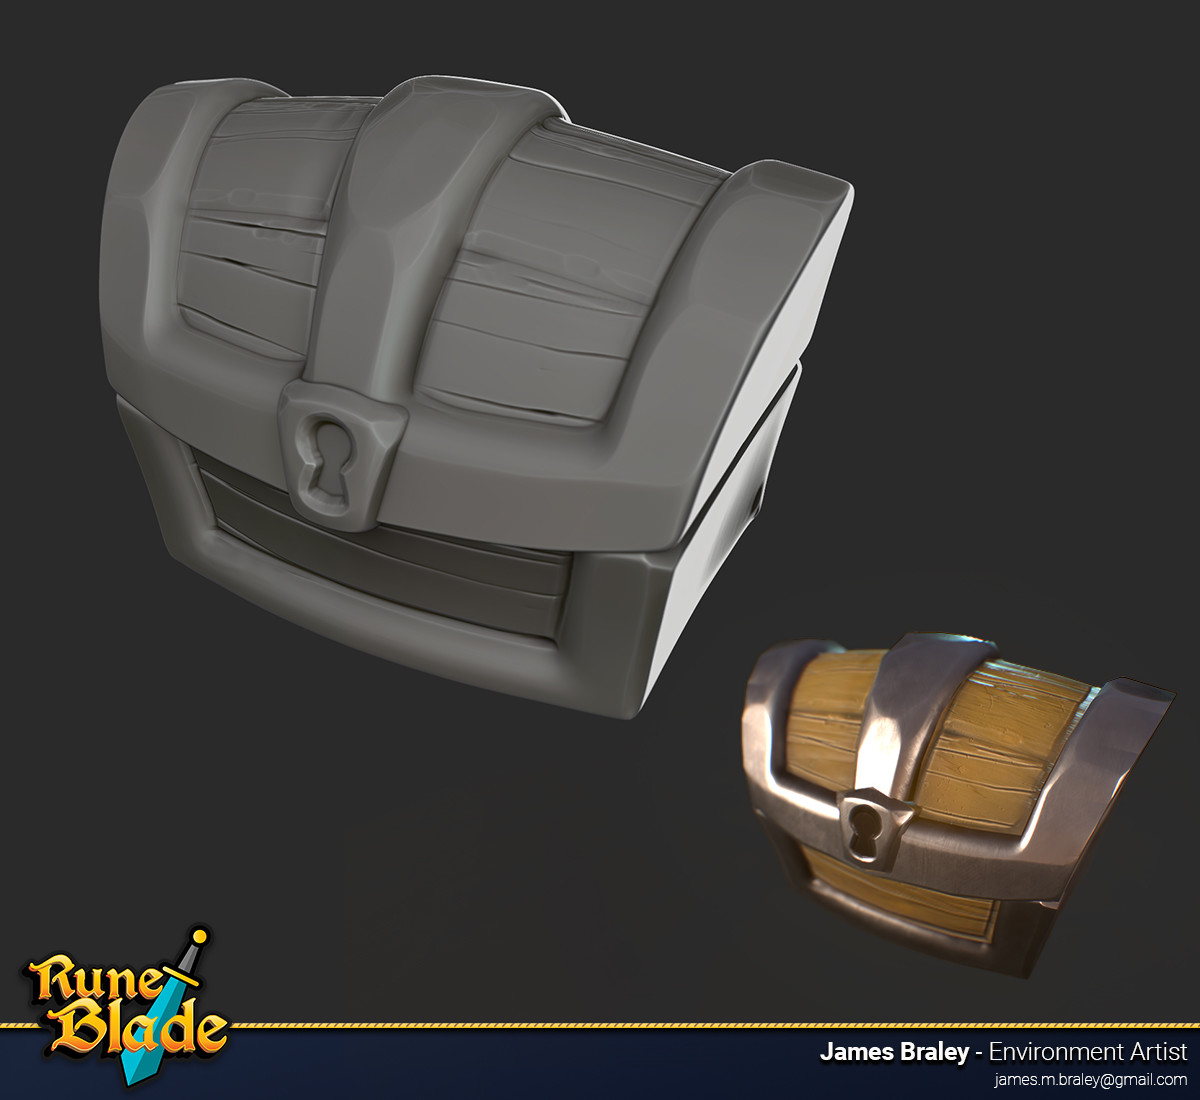 James braley braley runeblade chest